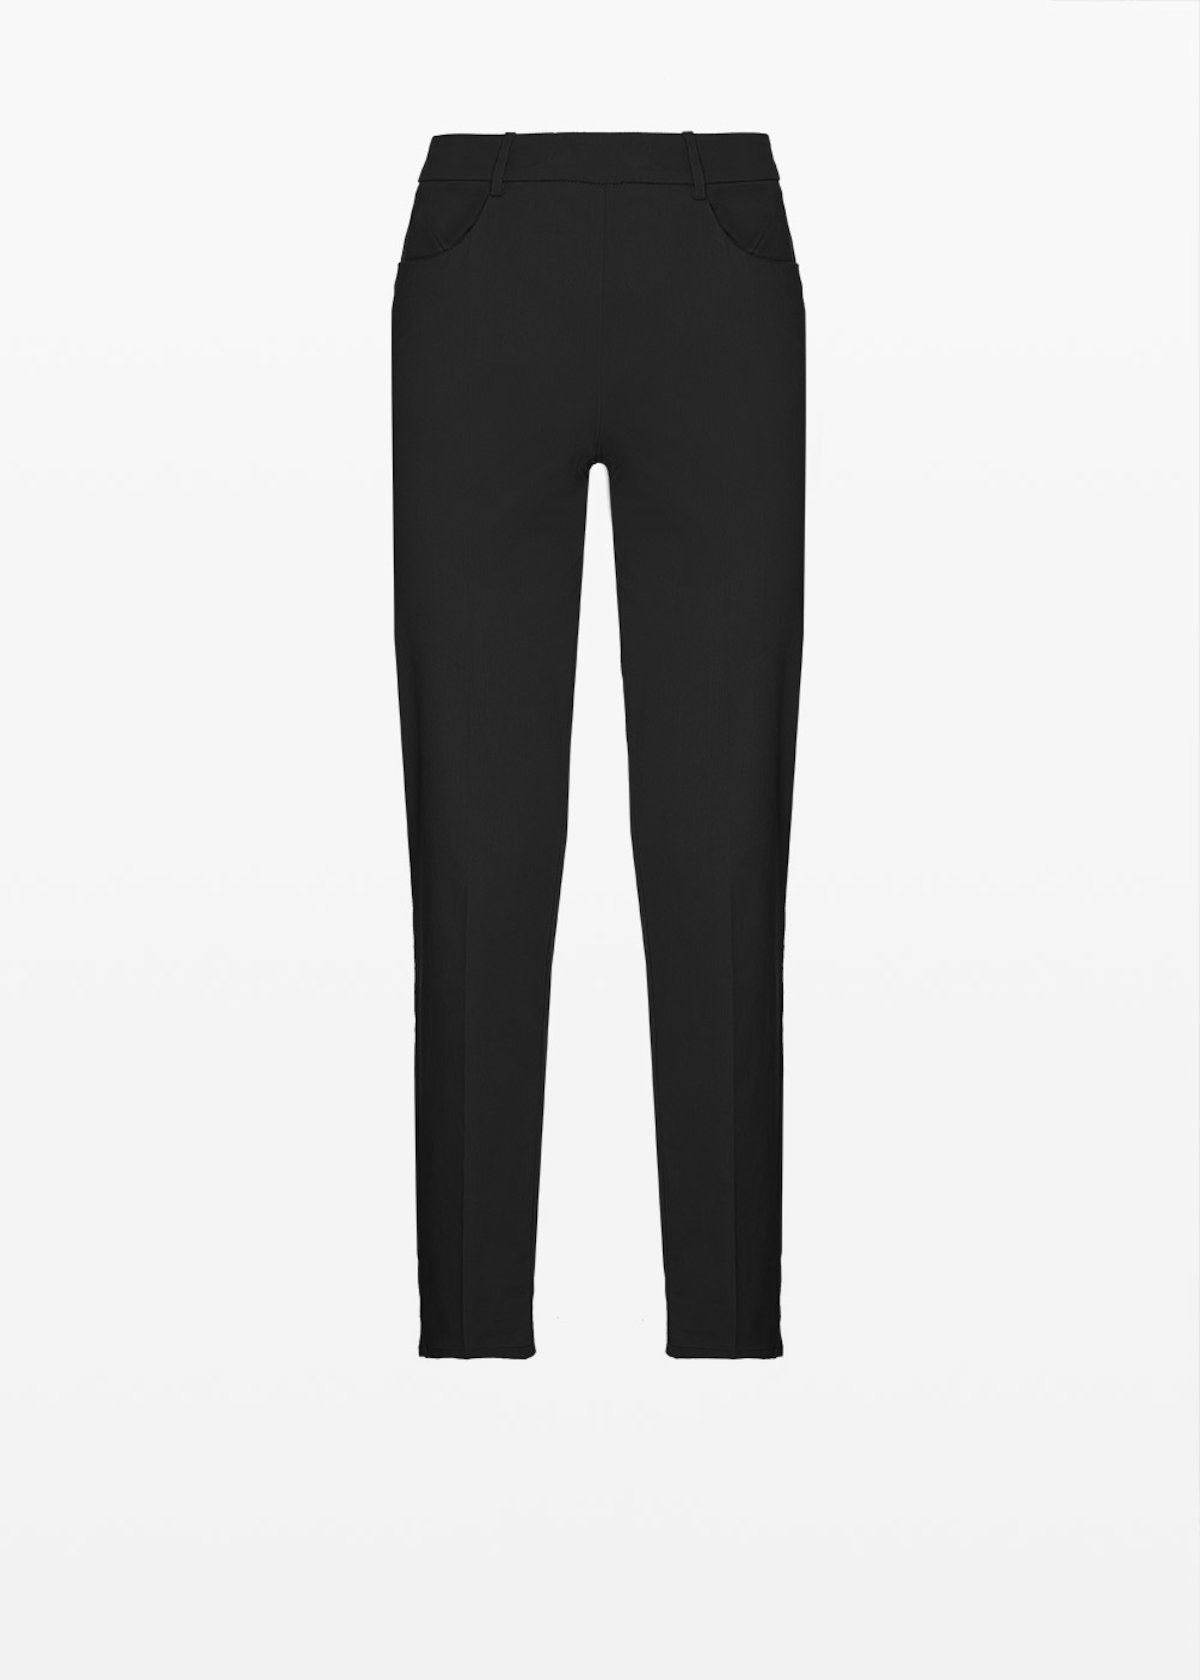 Scarlett C cotton trousers - Black - Woman